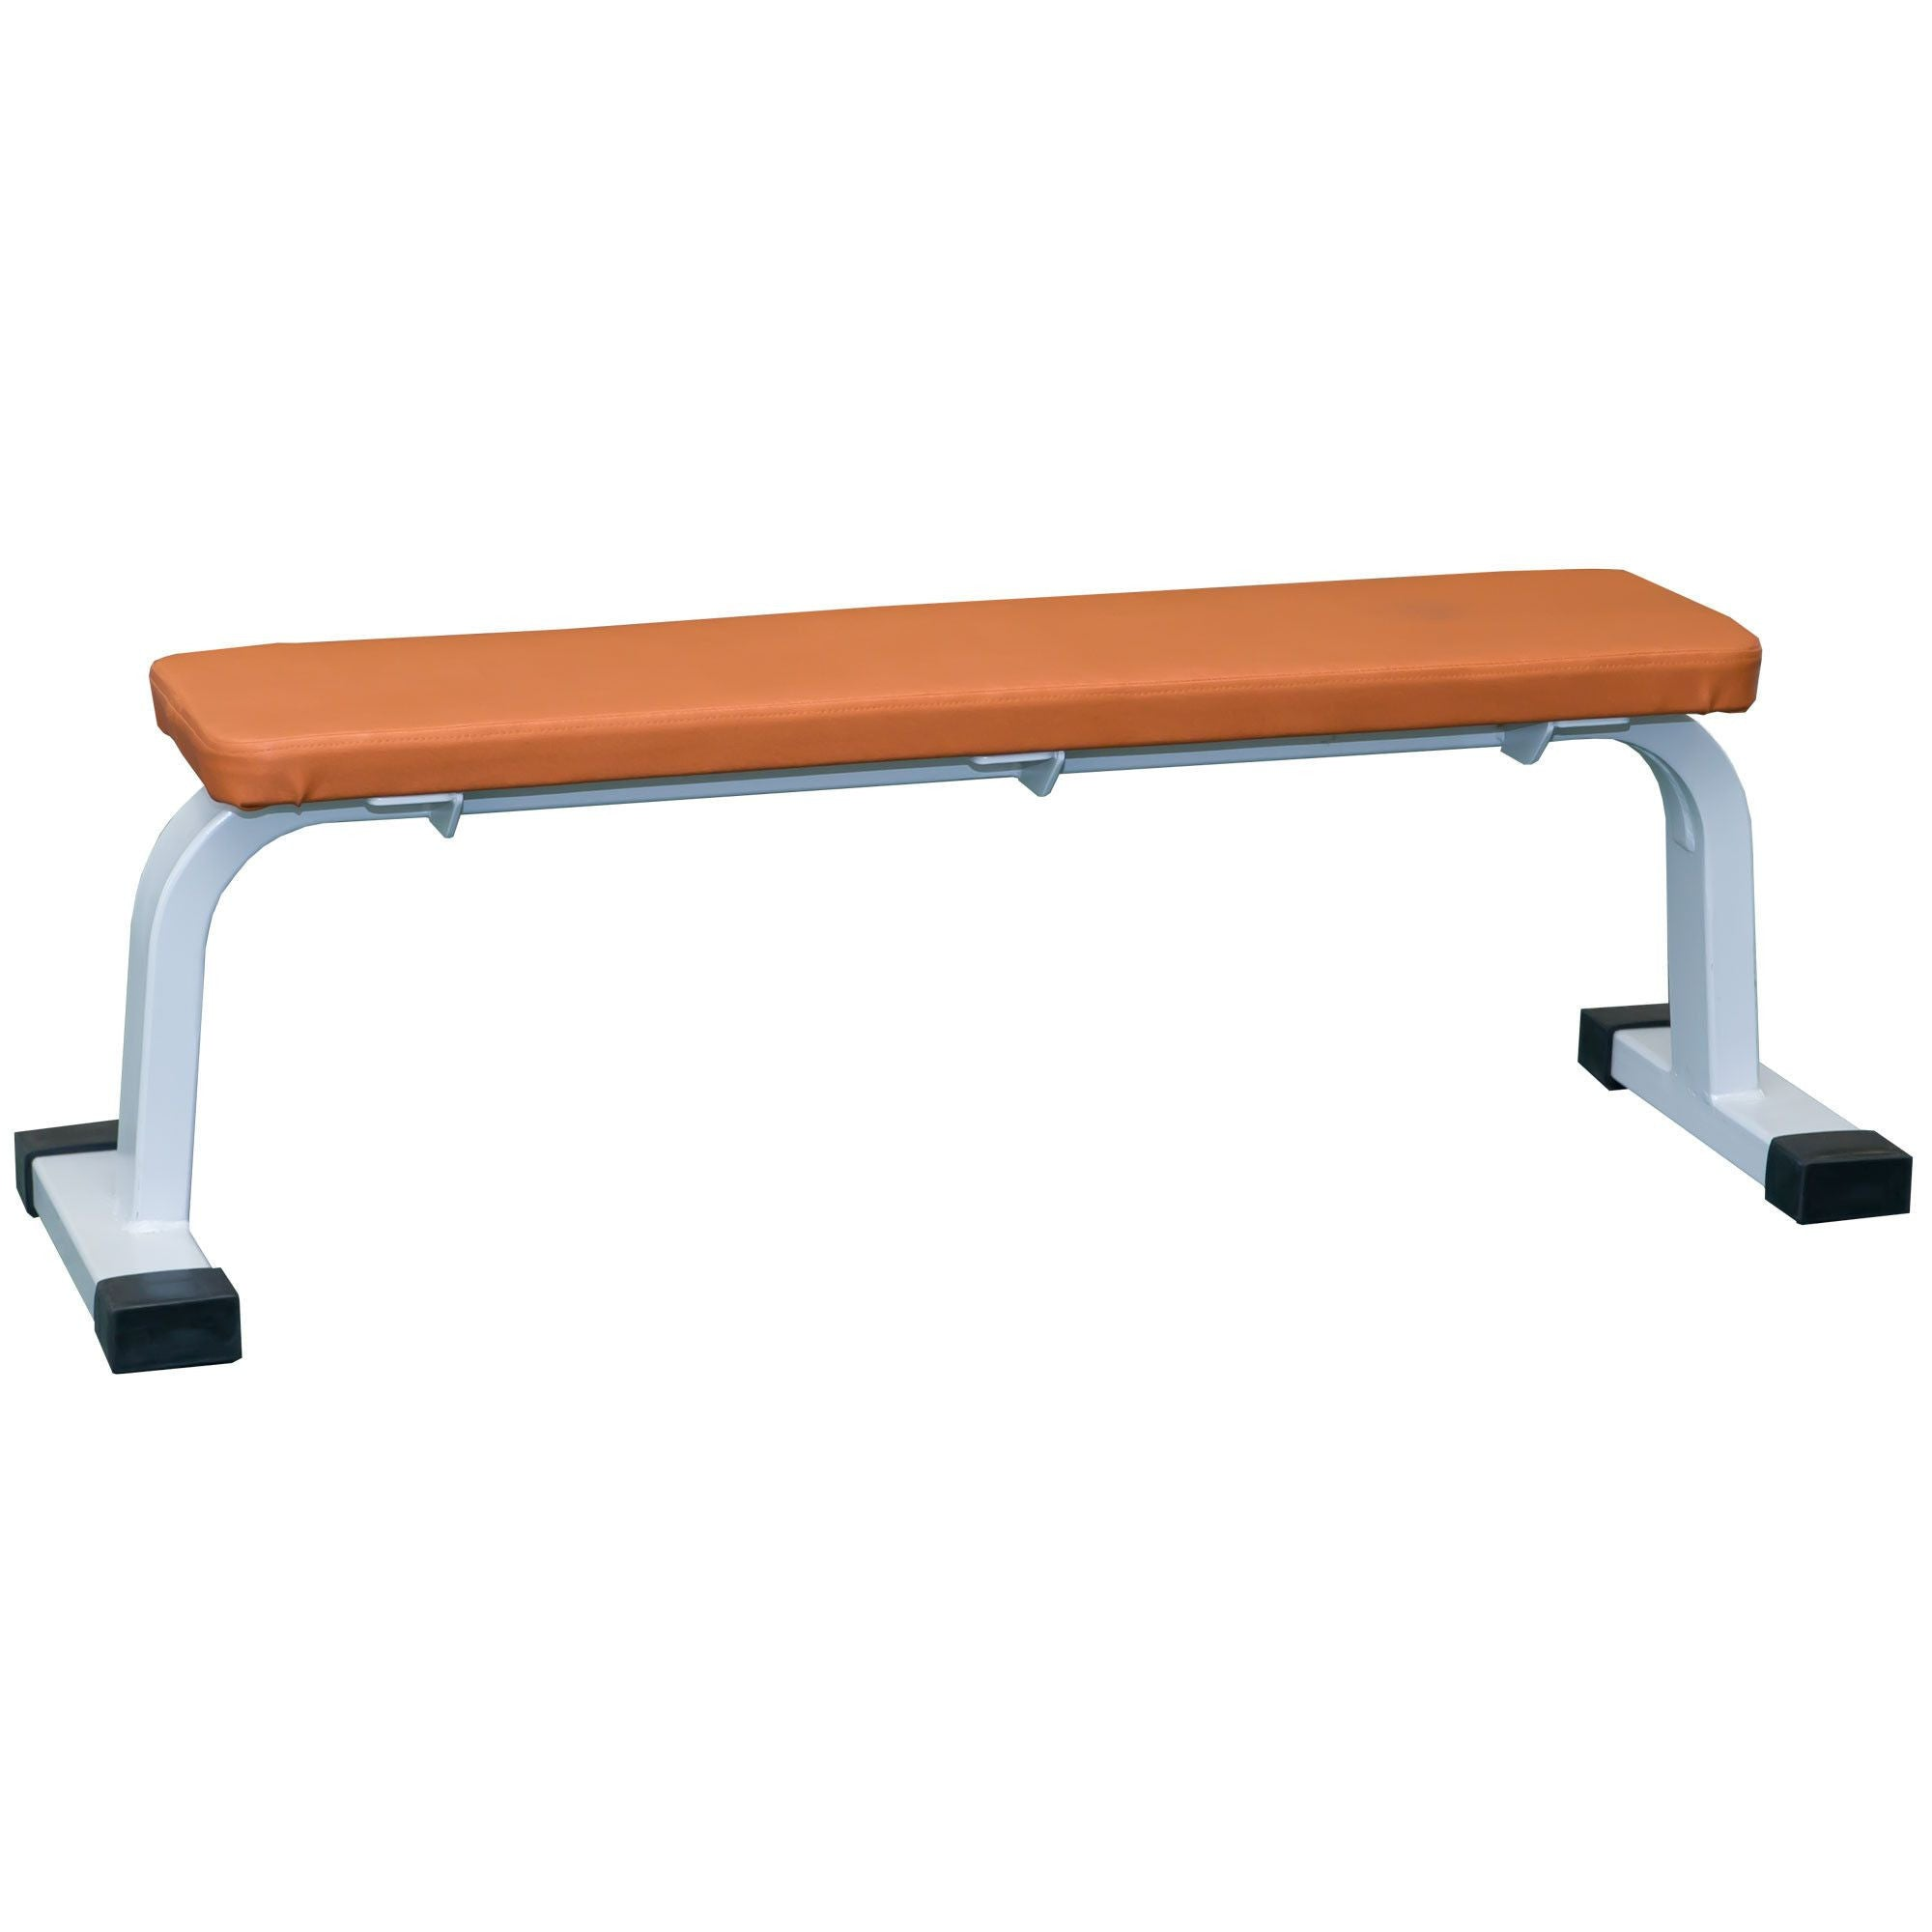 with imported and benches eb bench multi bar kobo stand folding weight exercise product main dips squat lifting